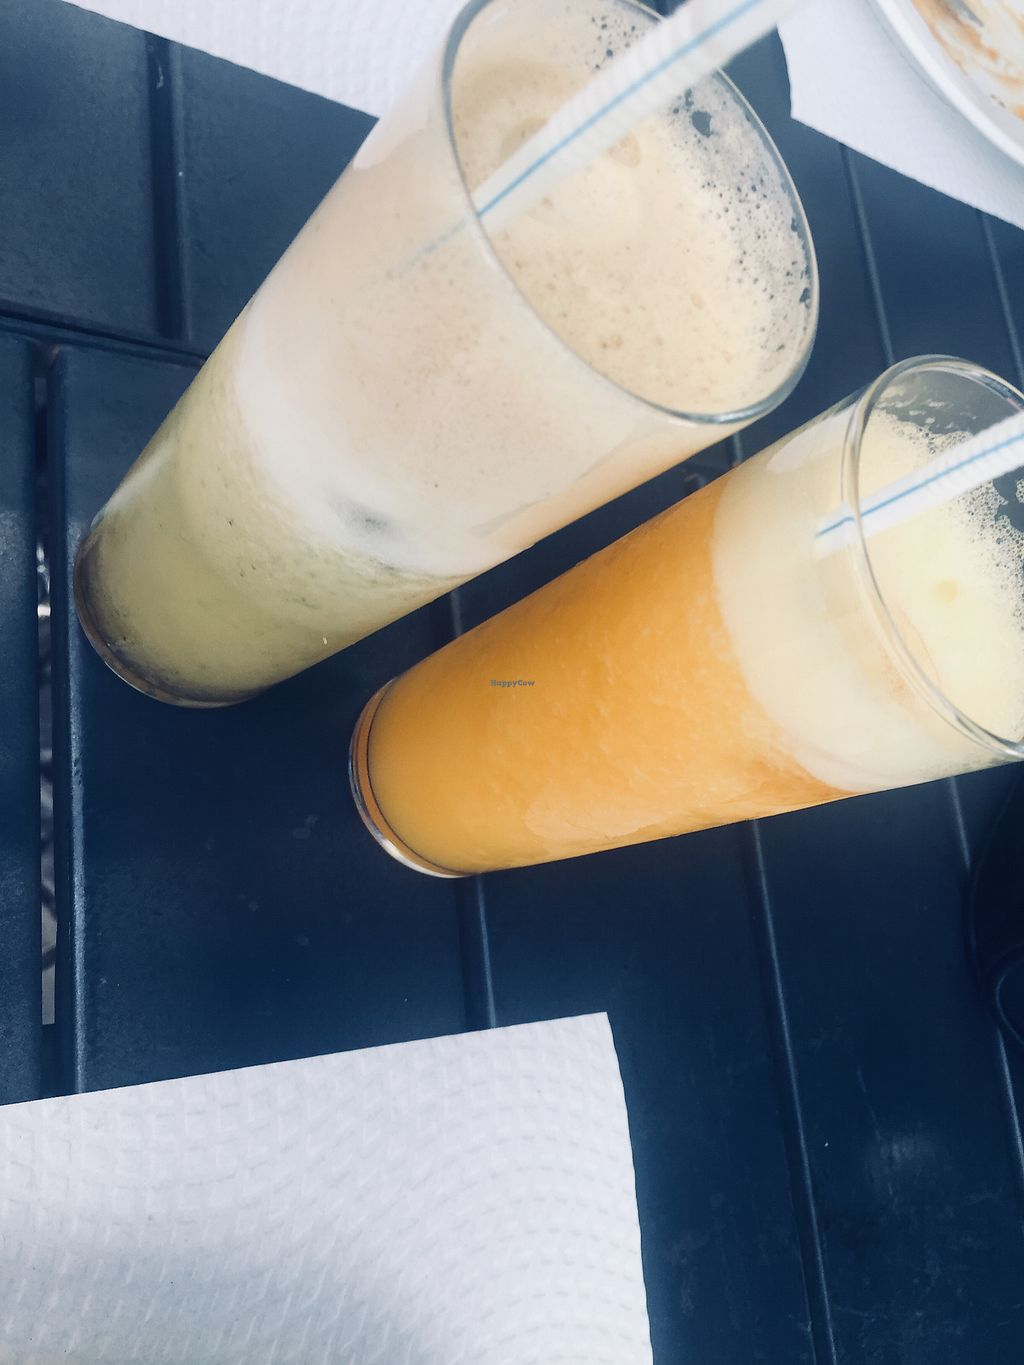 """Photo of Gengibre E Canela  by <a href=""""/members/profile/veg_x"""">veg_x</a> <br/>Great fresh fruit smoothies  <br/> October 10, 2017  - <a href='/contact/abuse/image/5397/313968'>Report</a>"""